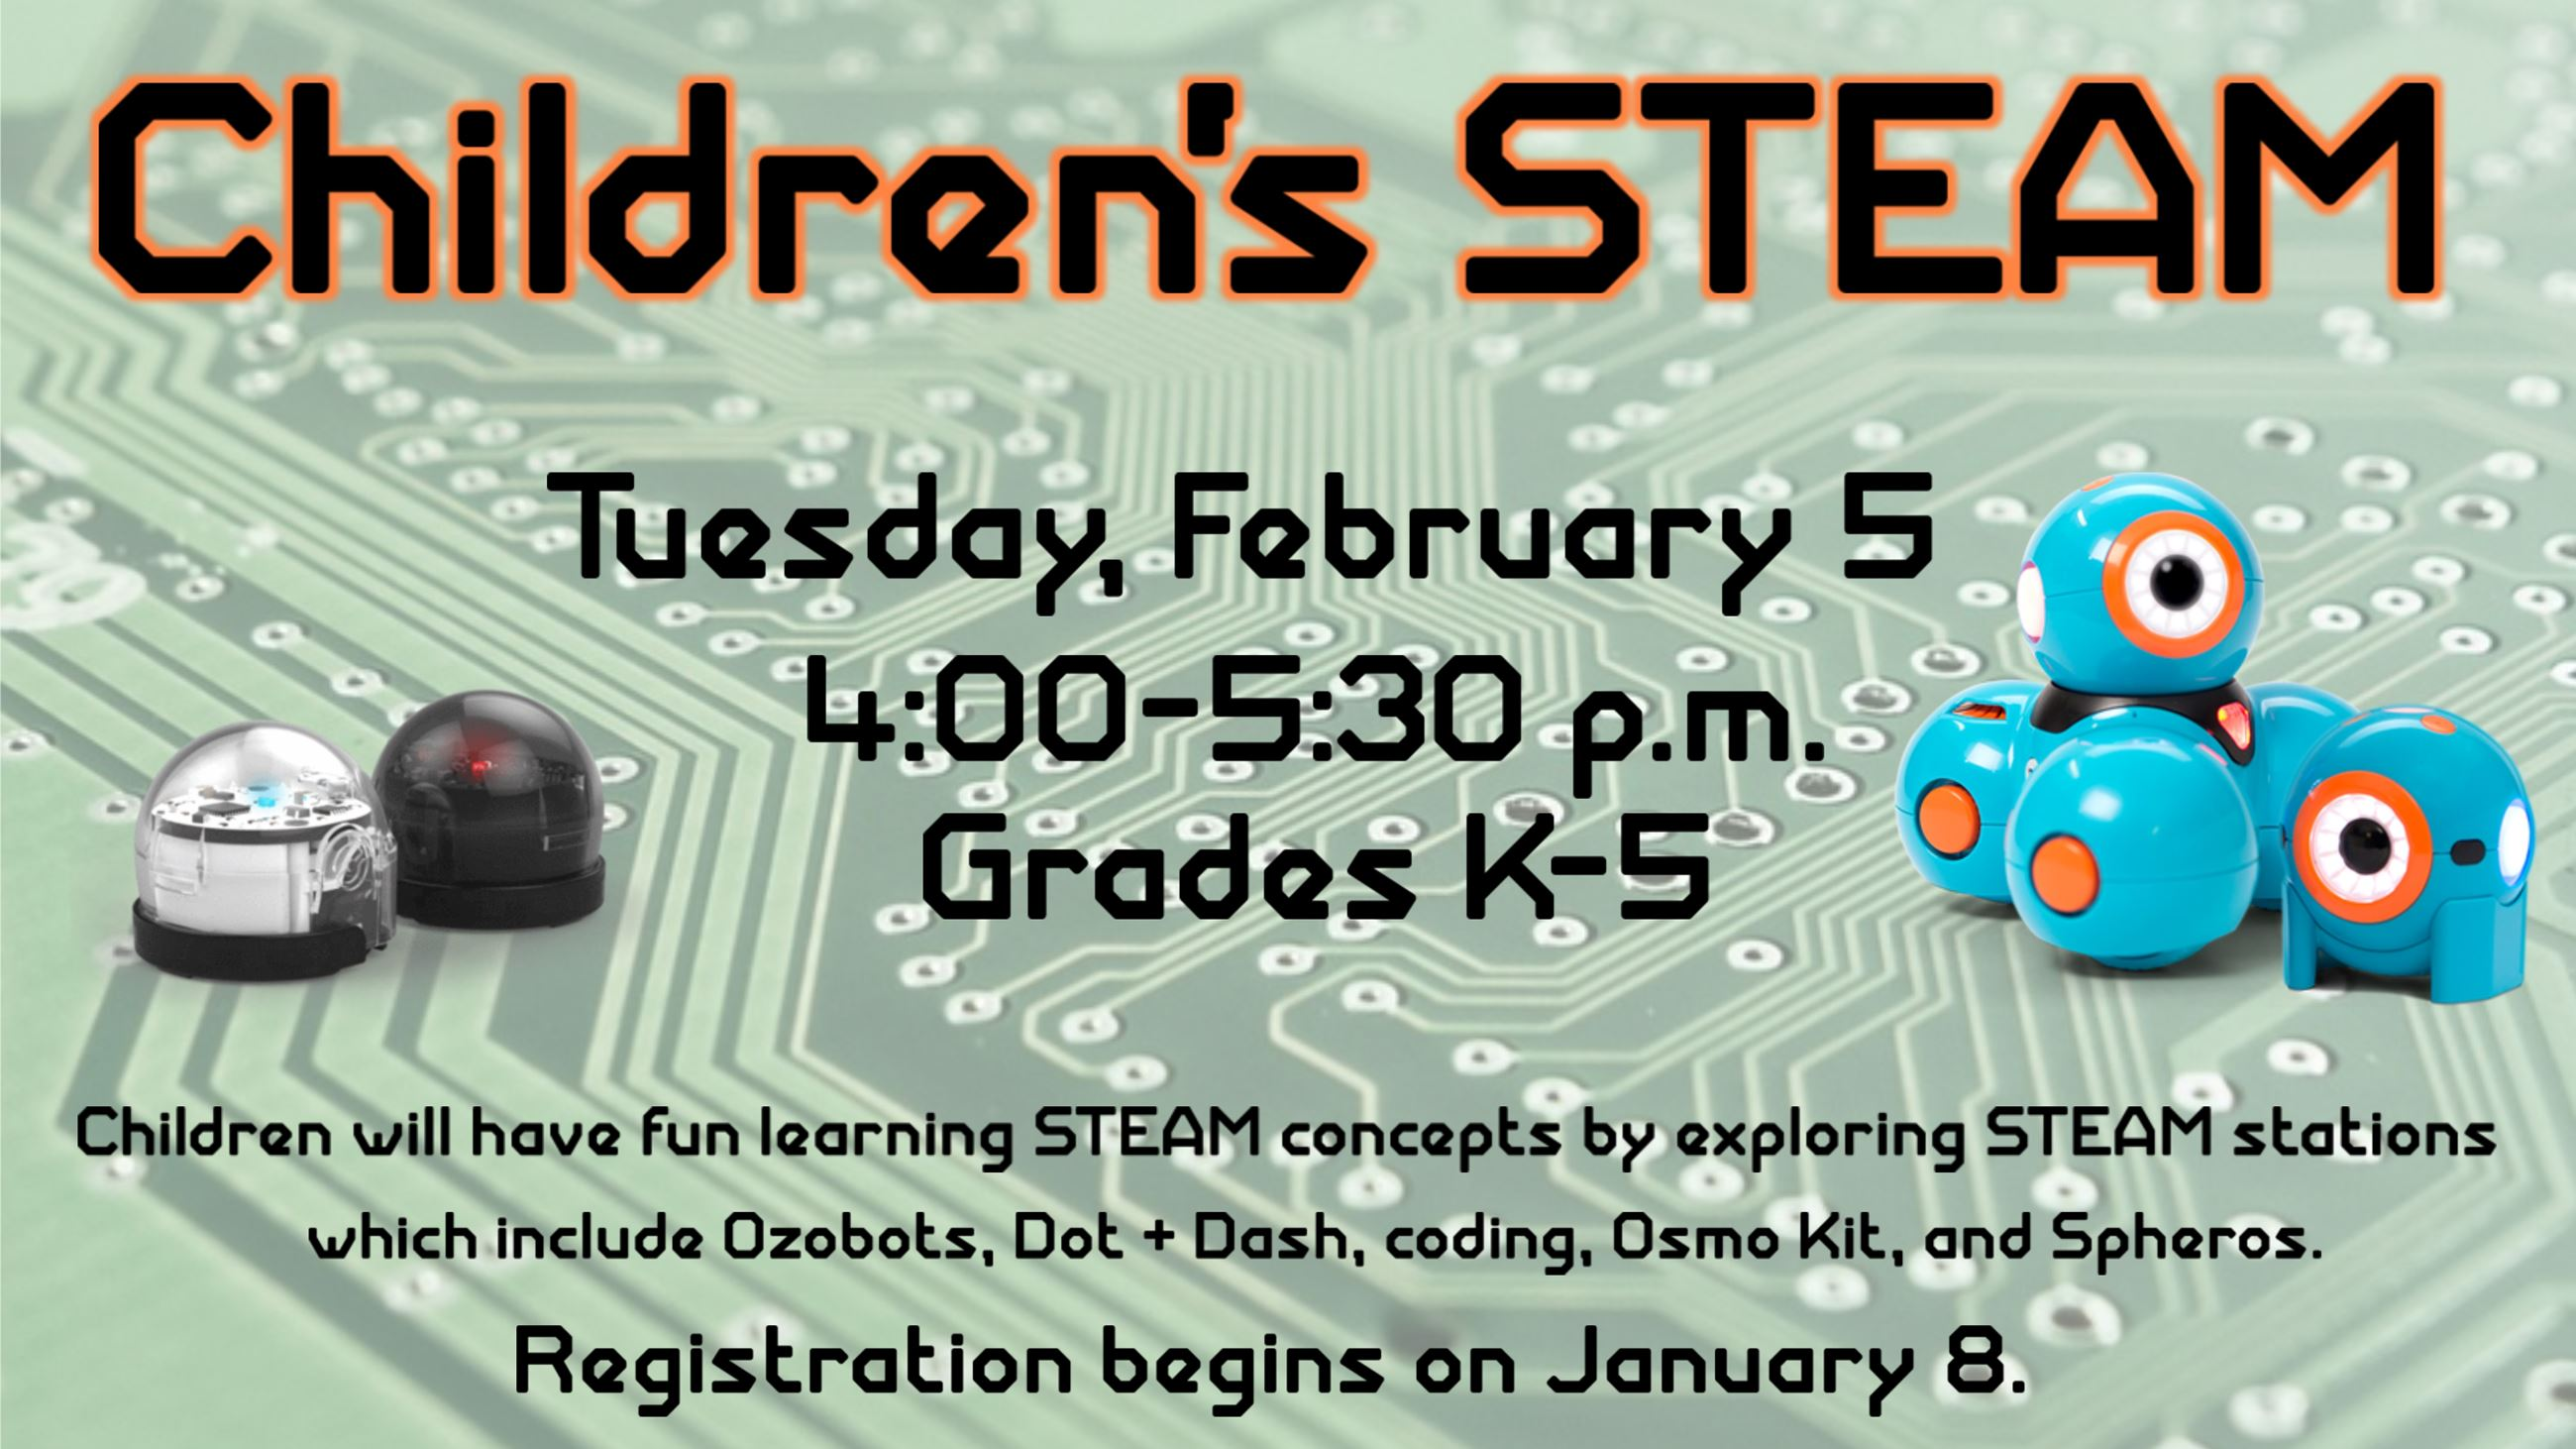 Childrens STEAM. February 5, 4 to 5:30 p.m. Grades K thru 5. Registration begins January 8.